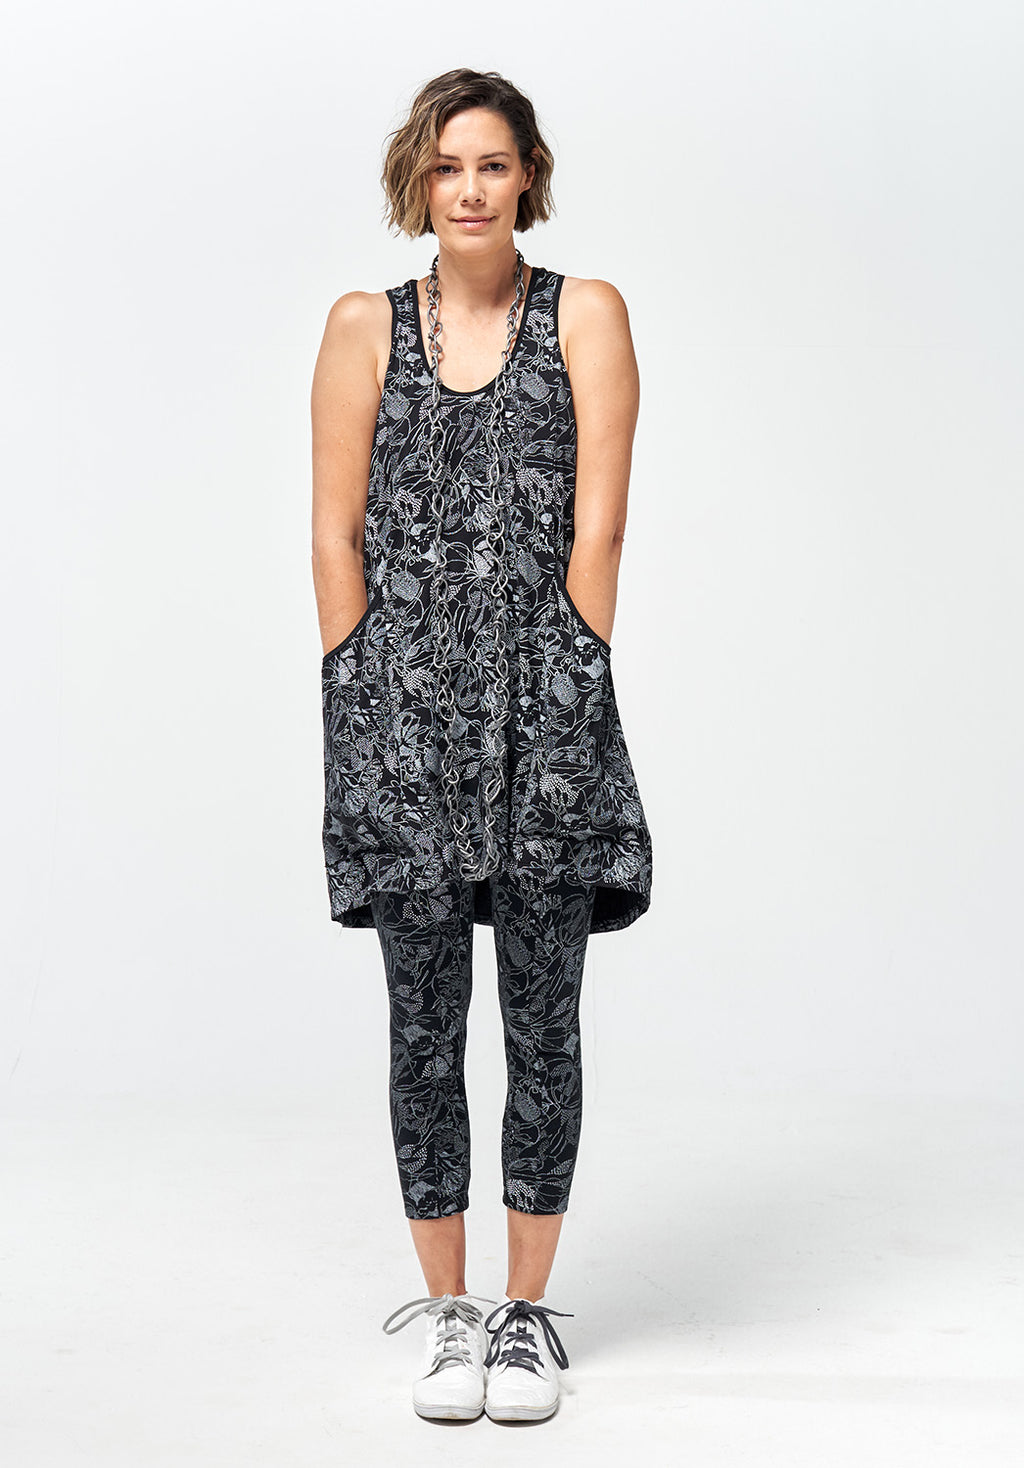 Recline short dress black print